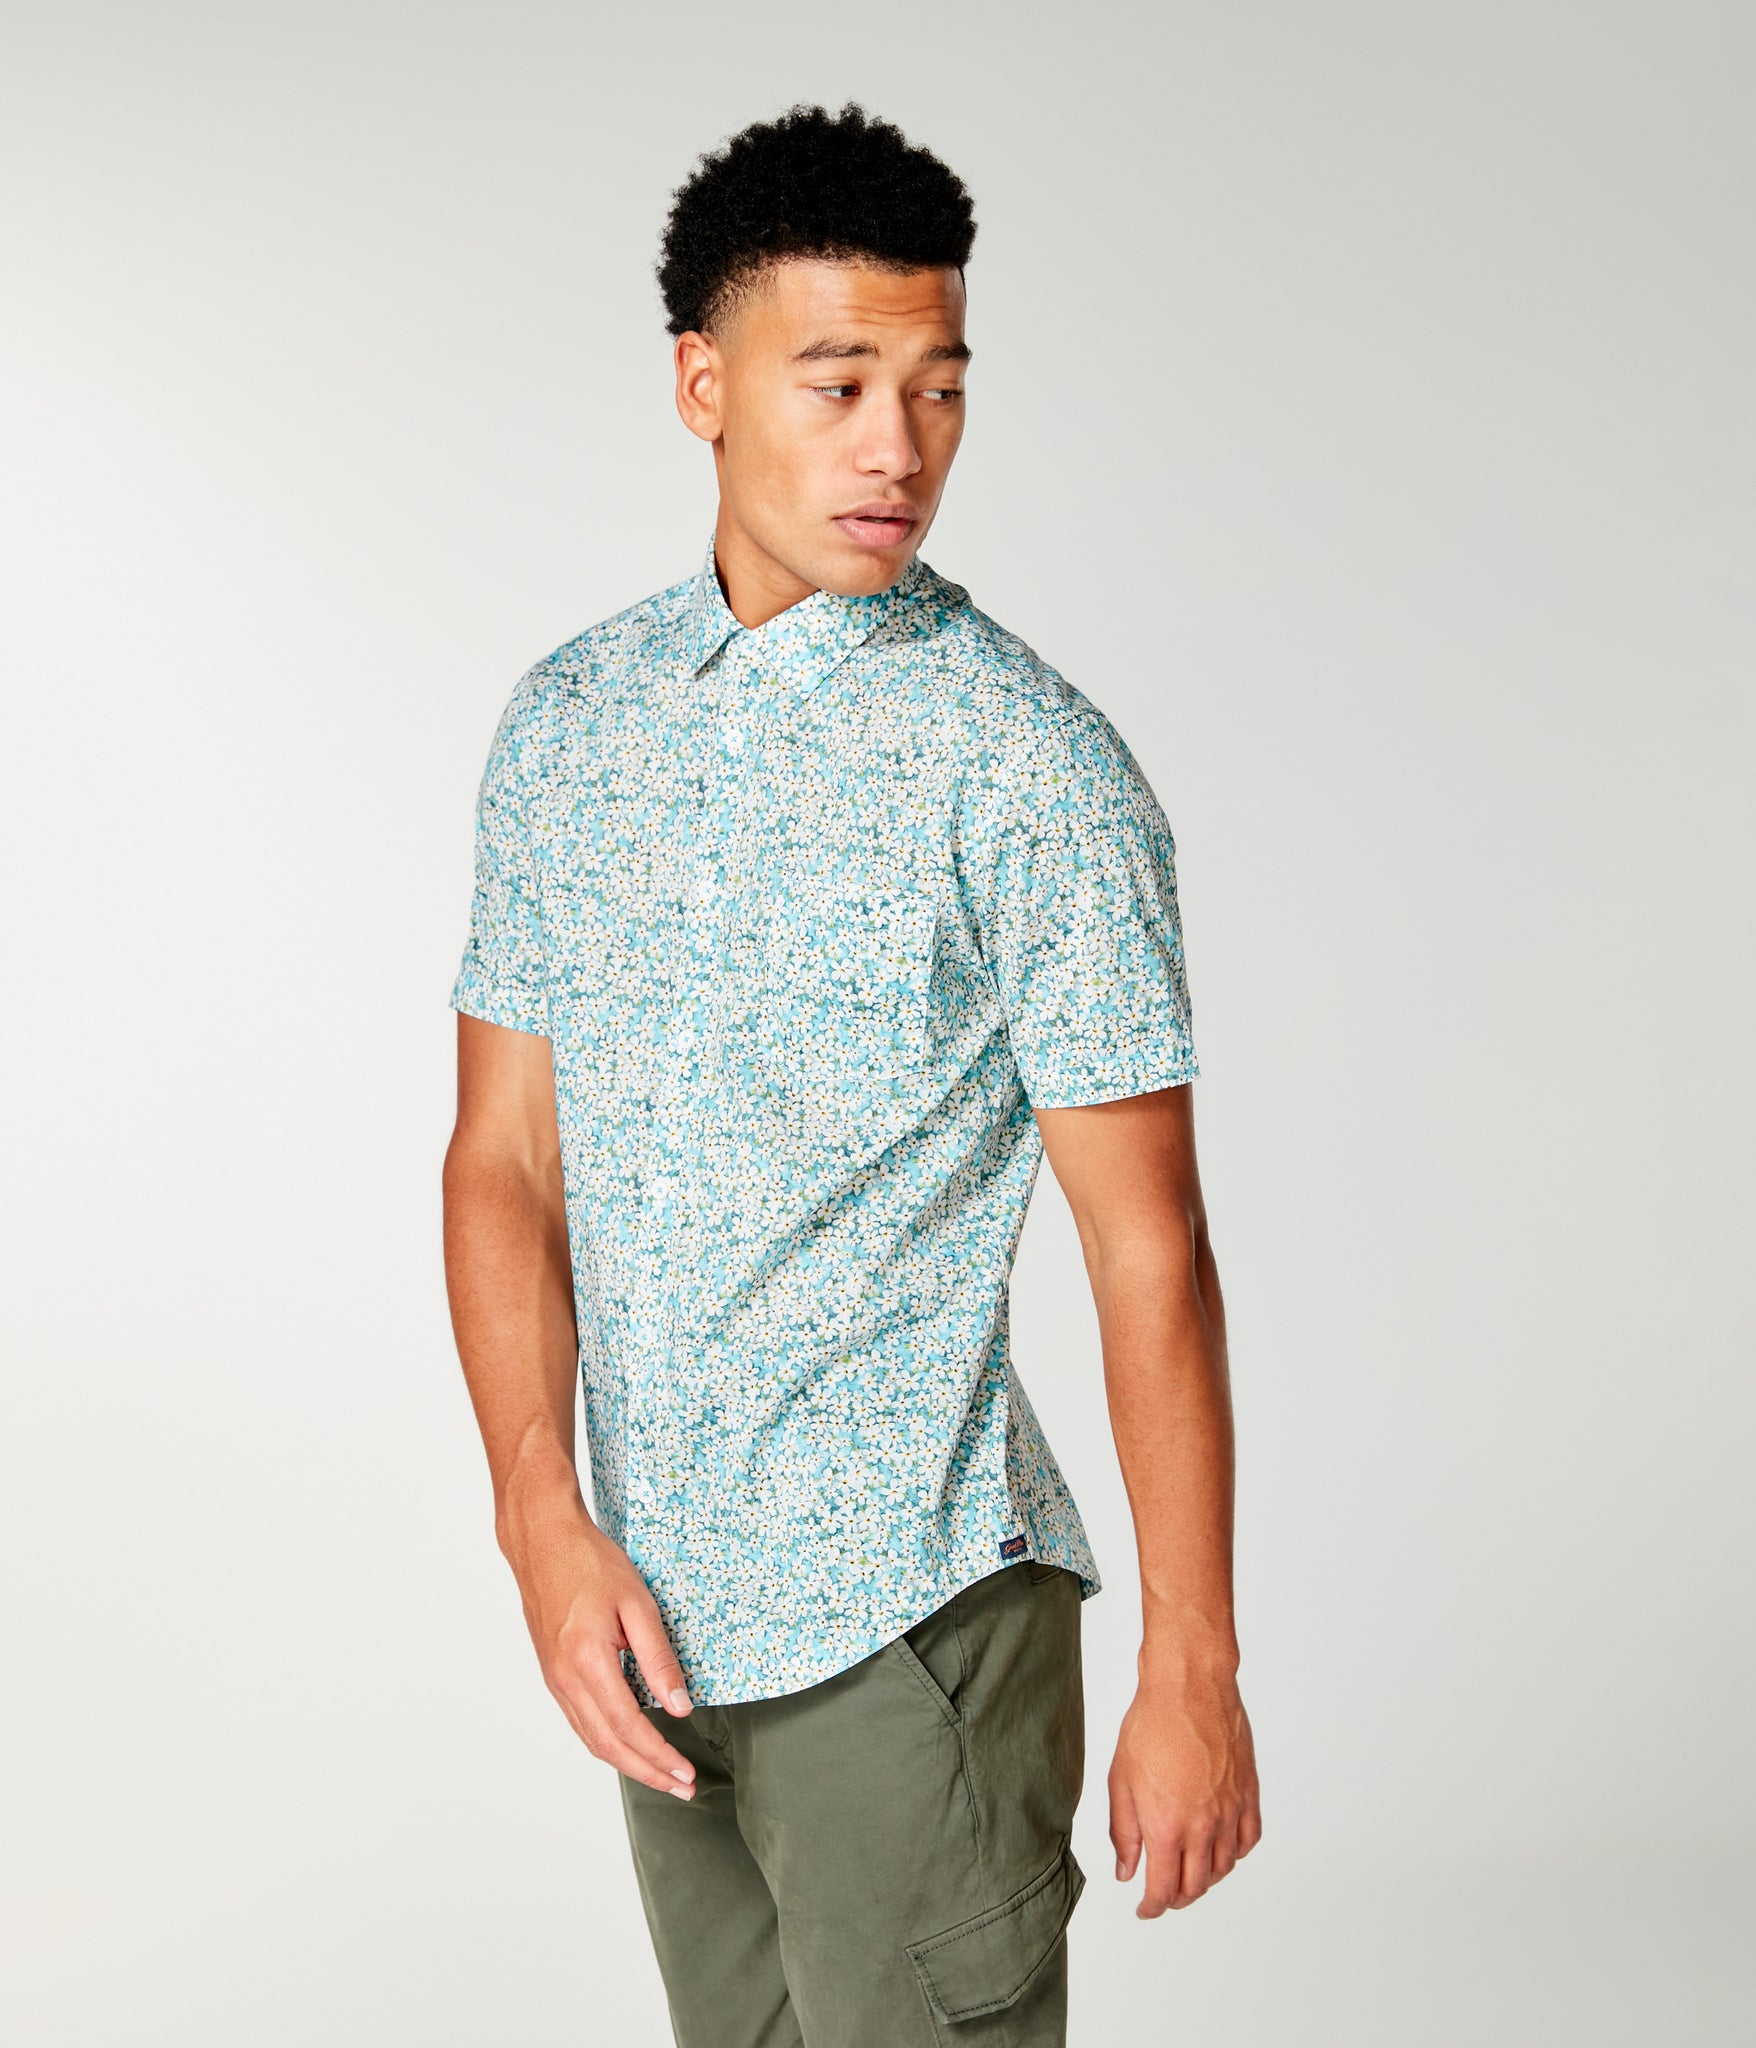 On-Point Print Shirt Short Sleeve - Blue Topaz Liberty Pond